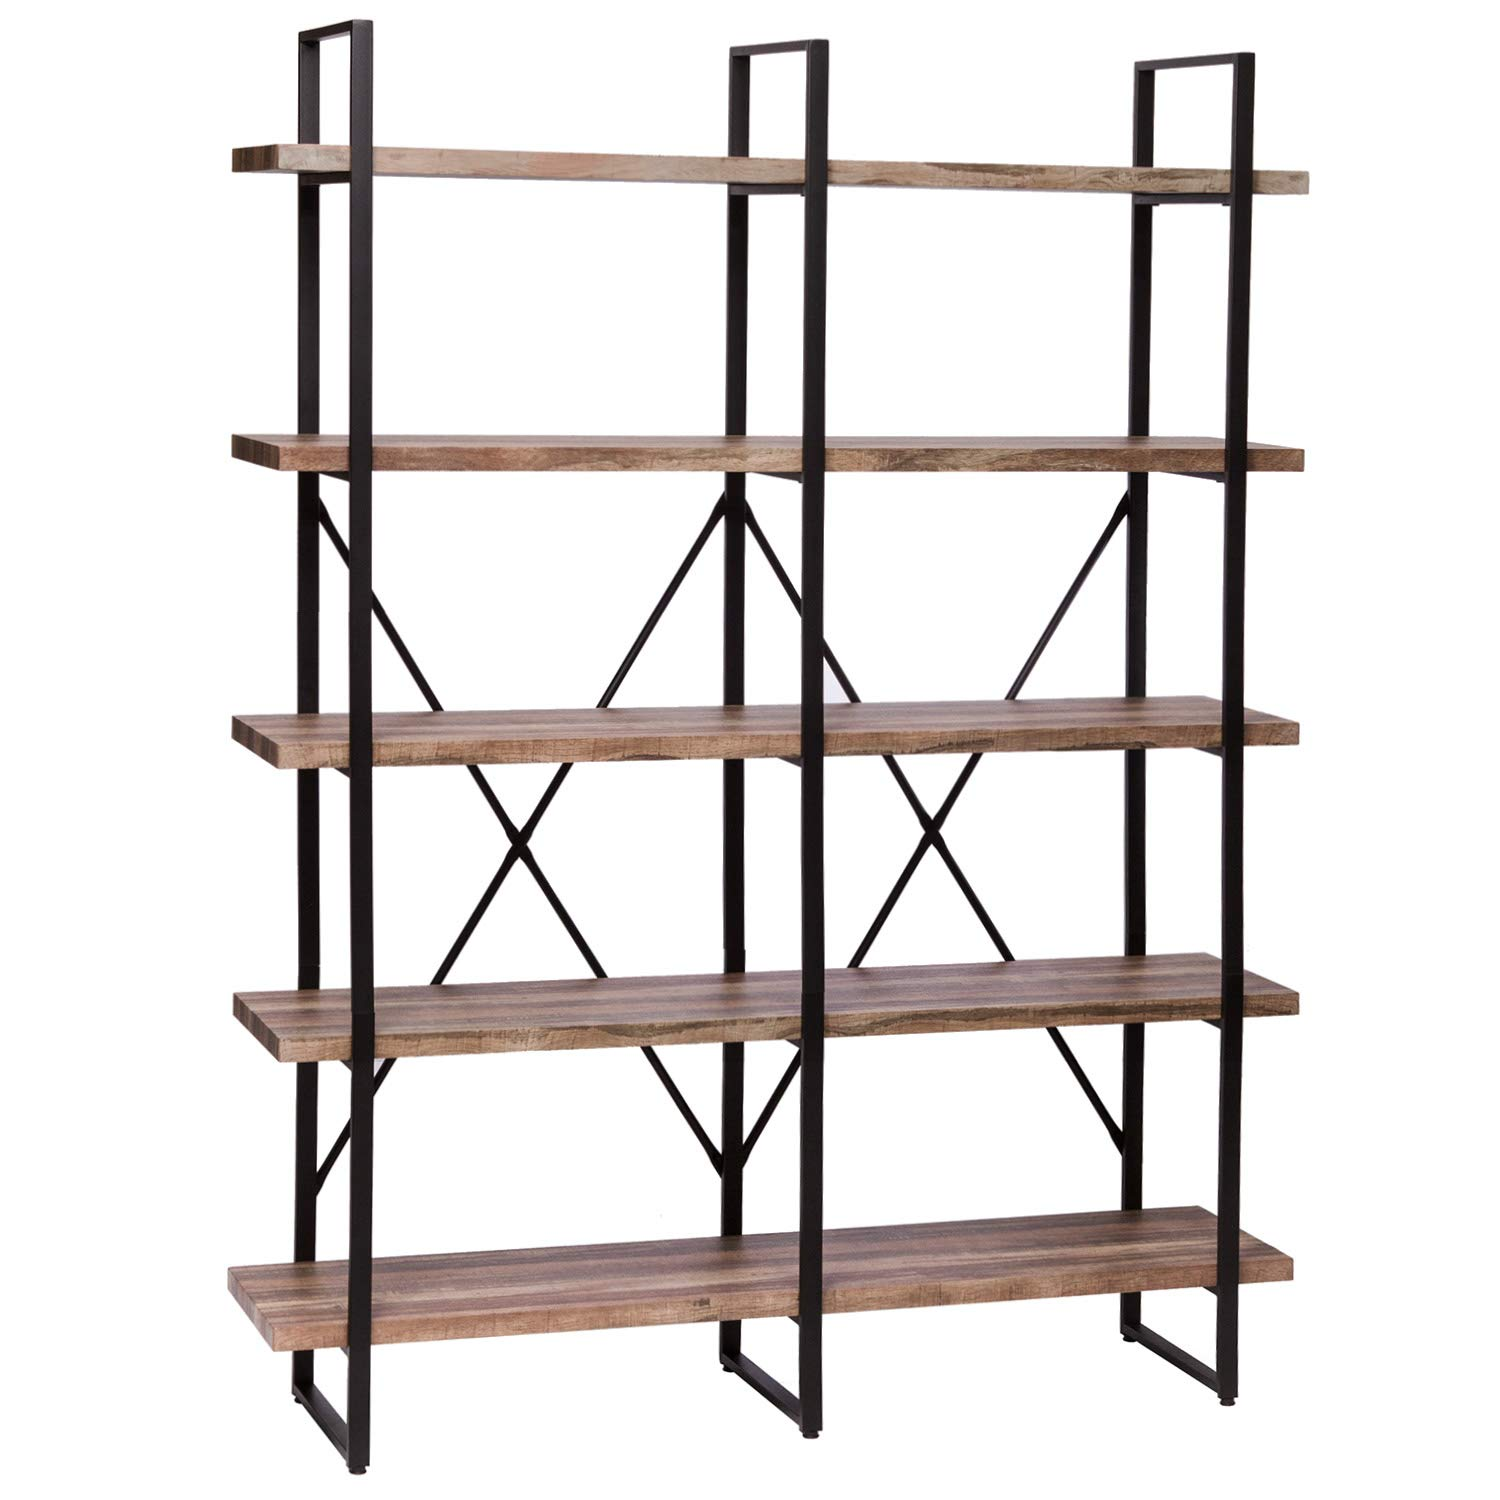 IRONCK Bookshelf, Double Wide 5-Tier Open Bookcase Vintage Industrial Large Shelves, Wood and Metal Etagere Bookshelves, for Home Decor Display, Office Furniture by IRONCK (Image #1)